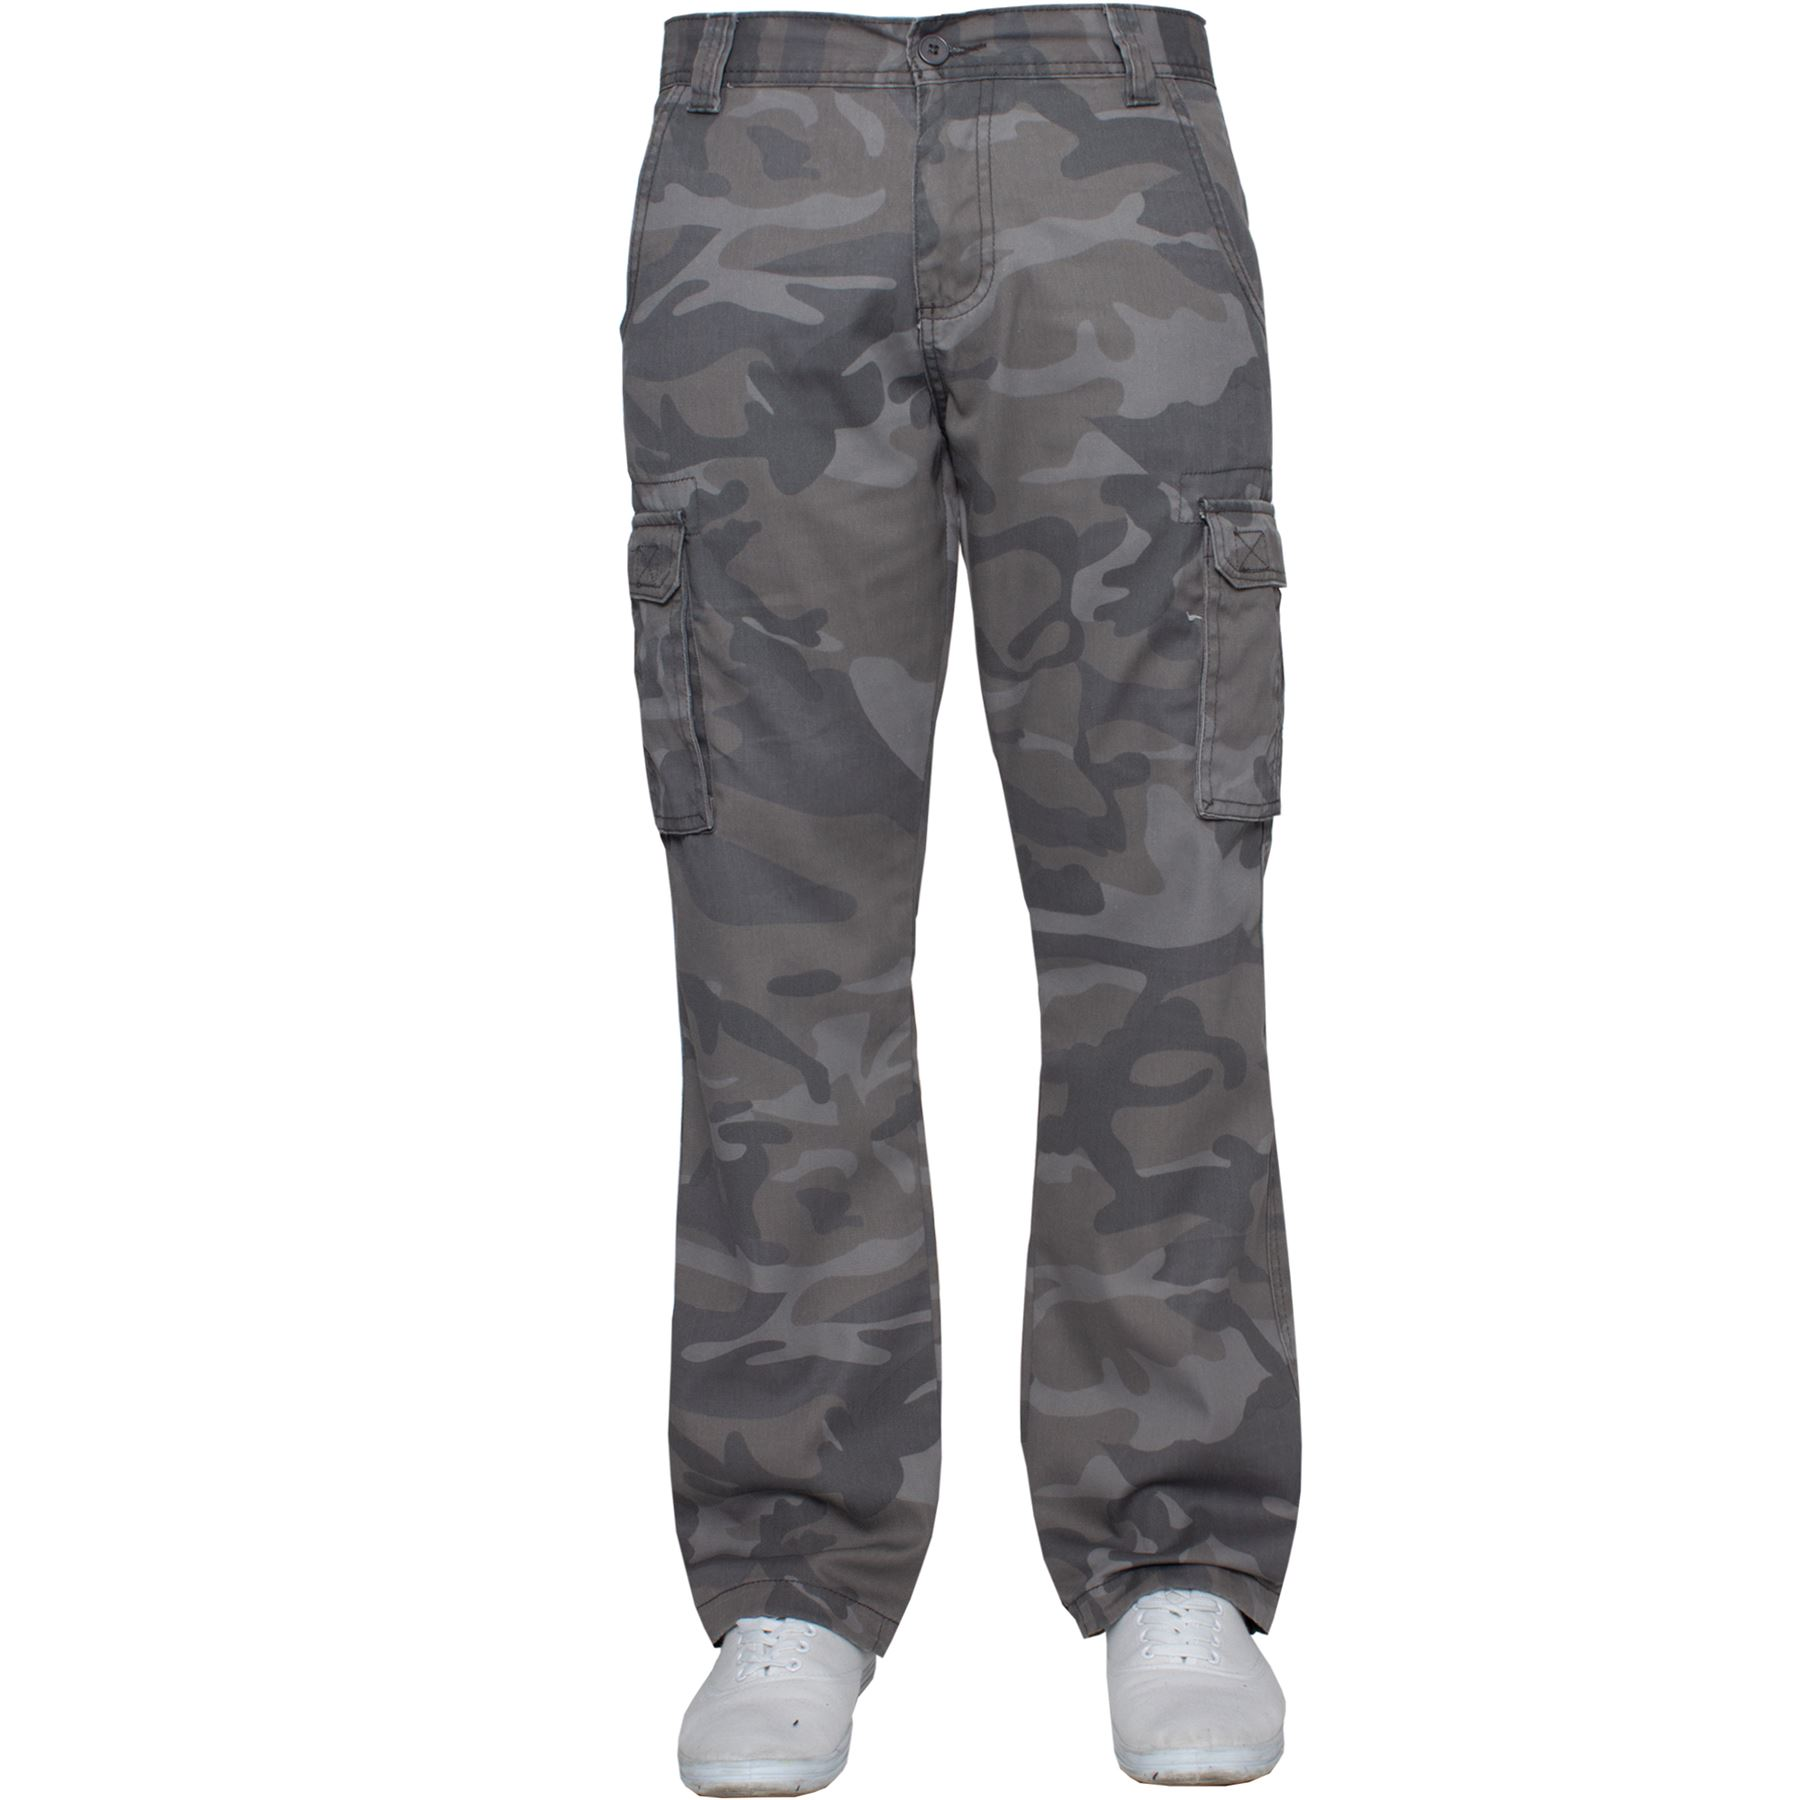 Kruze-Mens-Military-Combat-Trousers-Camouflage-Cargo-Camo-Army-Casual-Work-Pants thumbnail 12